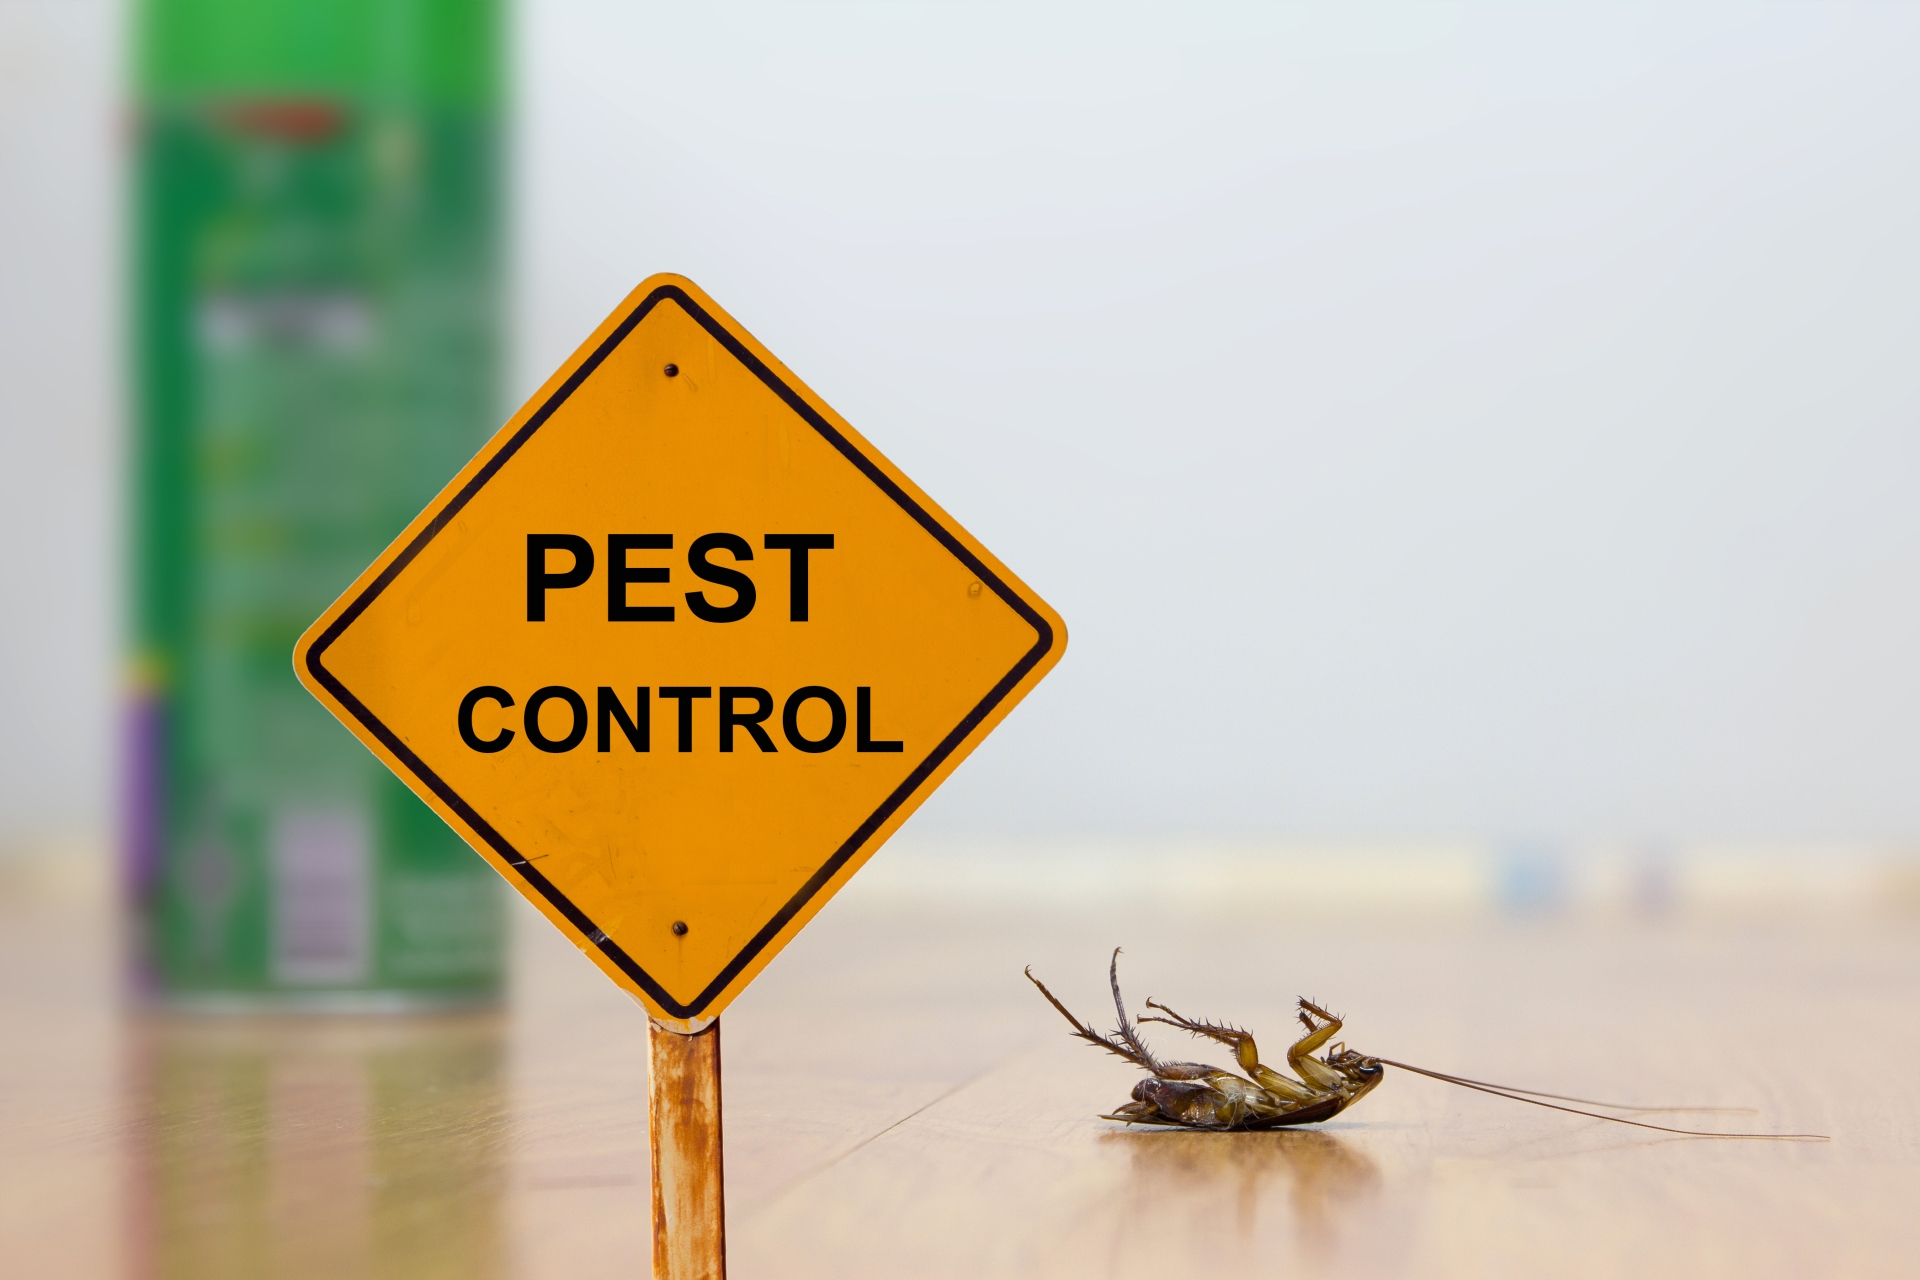 24 Hour Pest Control, Pest Control in Farningham, Eynsford, Horton Kirby, DA4. Call Now 020 8166 9746